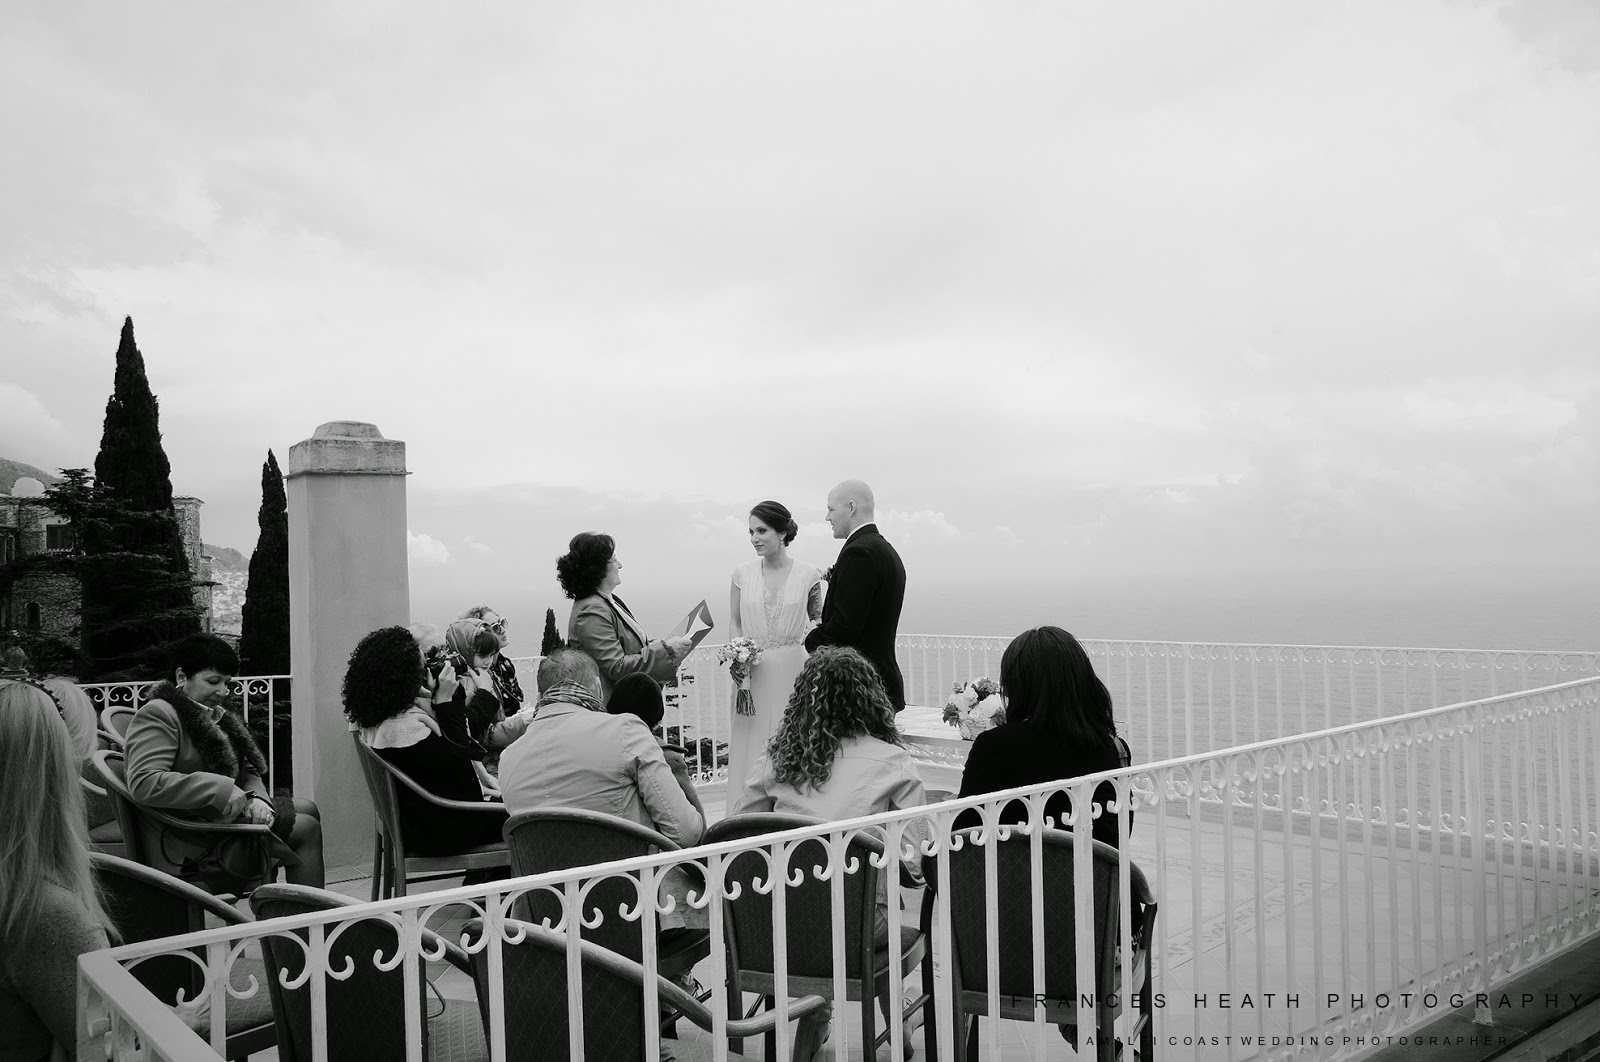 Wedding ceremony in Positano